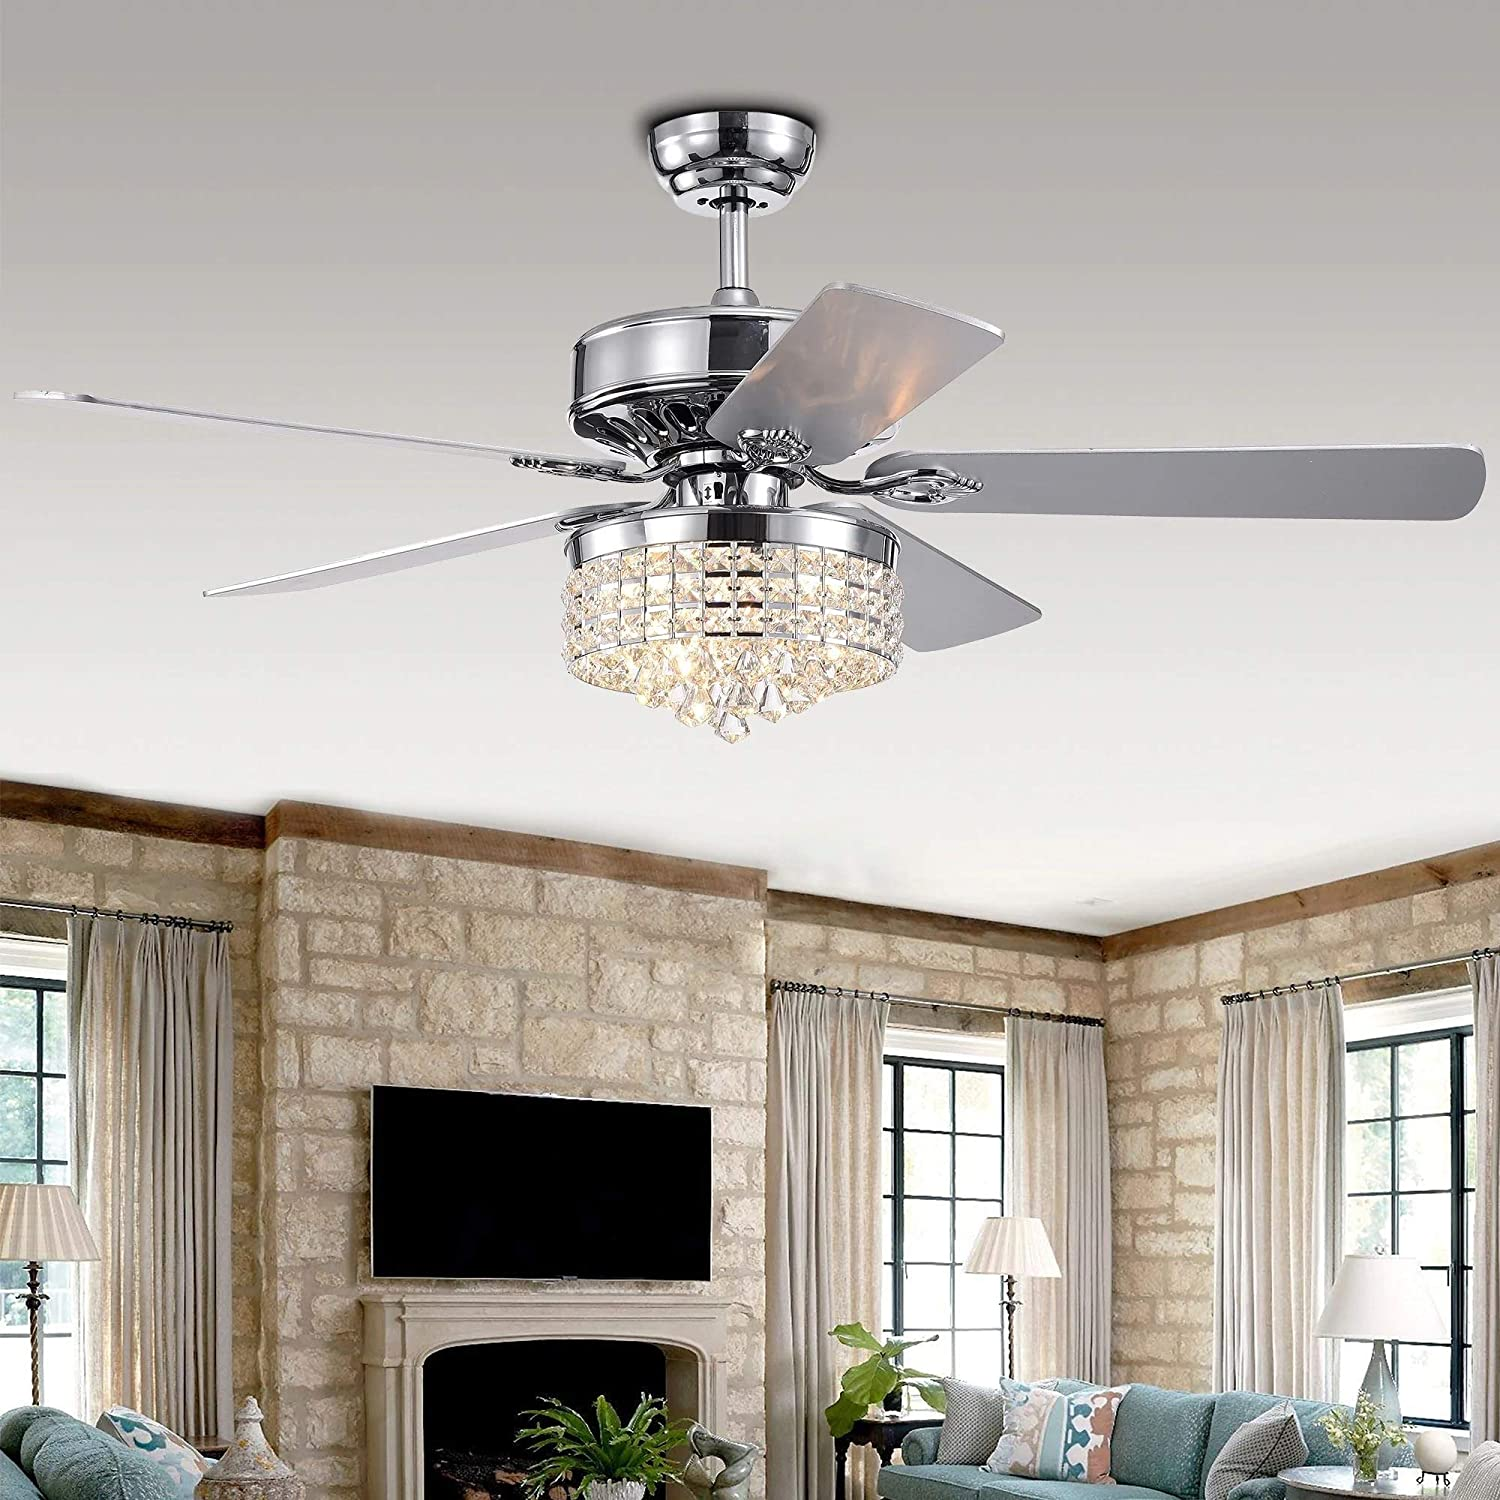 LuxureFan 52 Crystal LED Chrome Ceiling Fan Light Fixture Gorgeous Crystal 5 Reverse Wood Blades Modern Chandelier with Remote Control Decoration Home Living Room